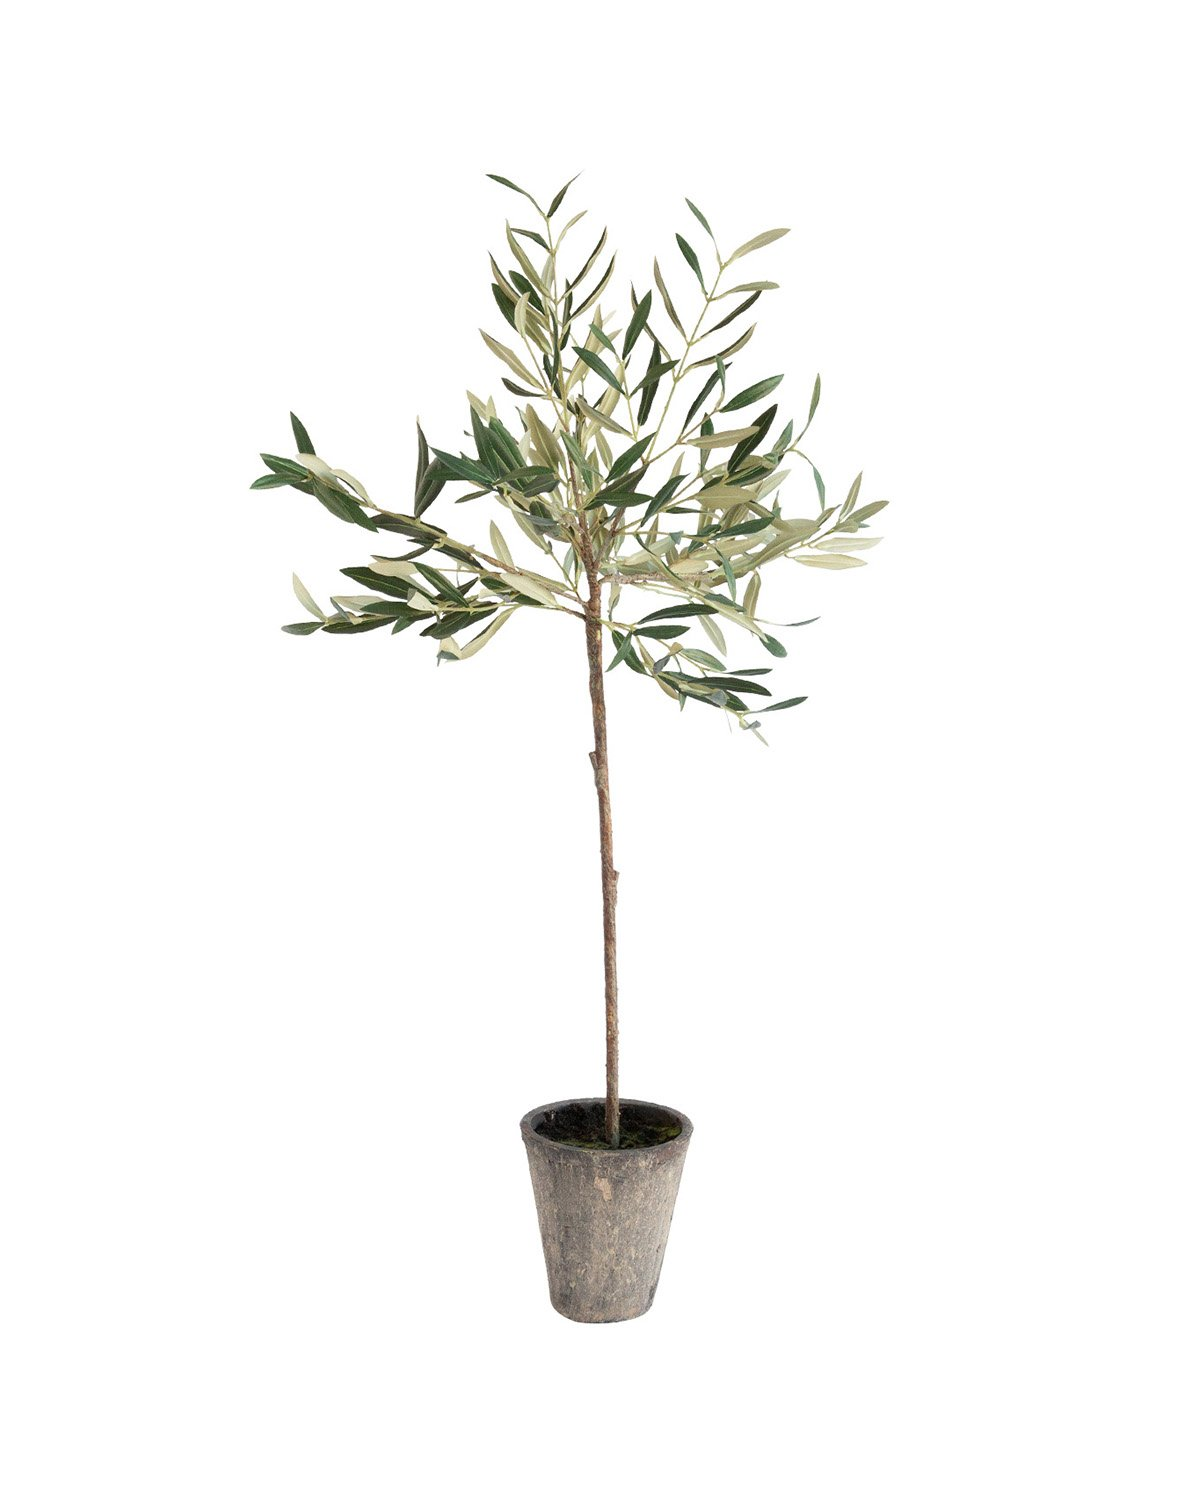 Faux_Potted_Olive_Tree_1.jpg